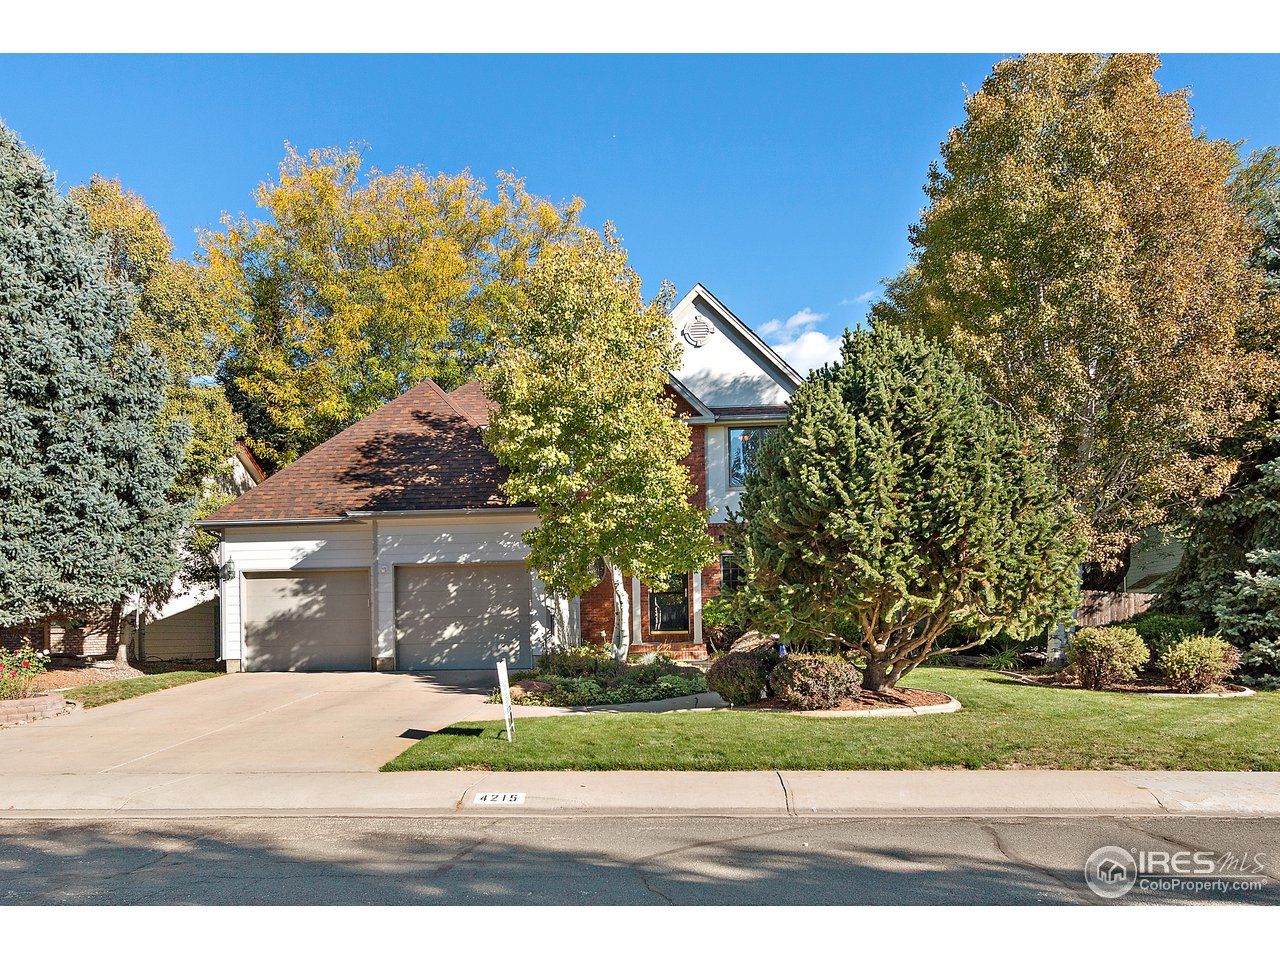 PRICE IMPROVEMENT! Show today! Welcome home to this beautiful 2-story with 5 bedrooms 4 baths and a LARGE LOT! The main floor has an awesome open floor plan with sitting room/office off kitchen. Stunning large backyard with built-in gas fireplace and grill. Finished basement has a fireplace, 2 bedrooms, rec room, and even a workshop with dog wash. MUST SEE